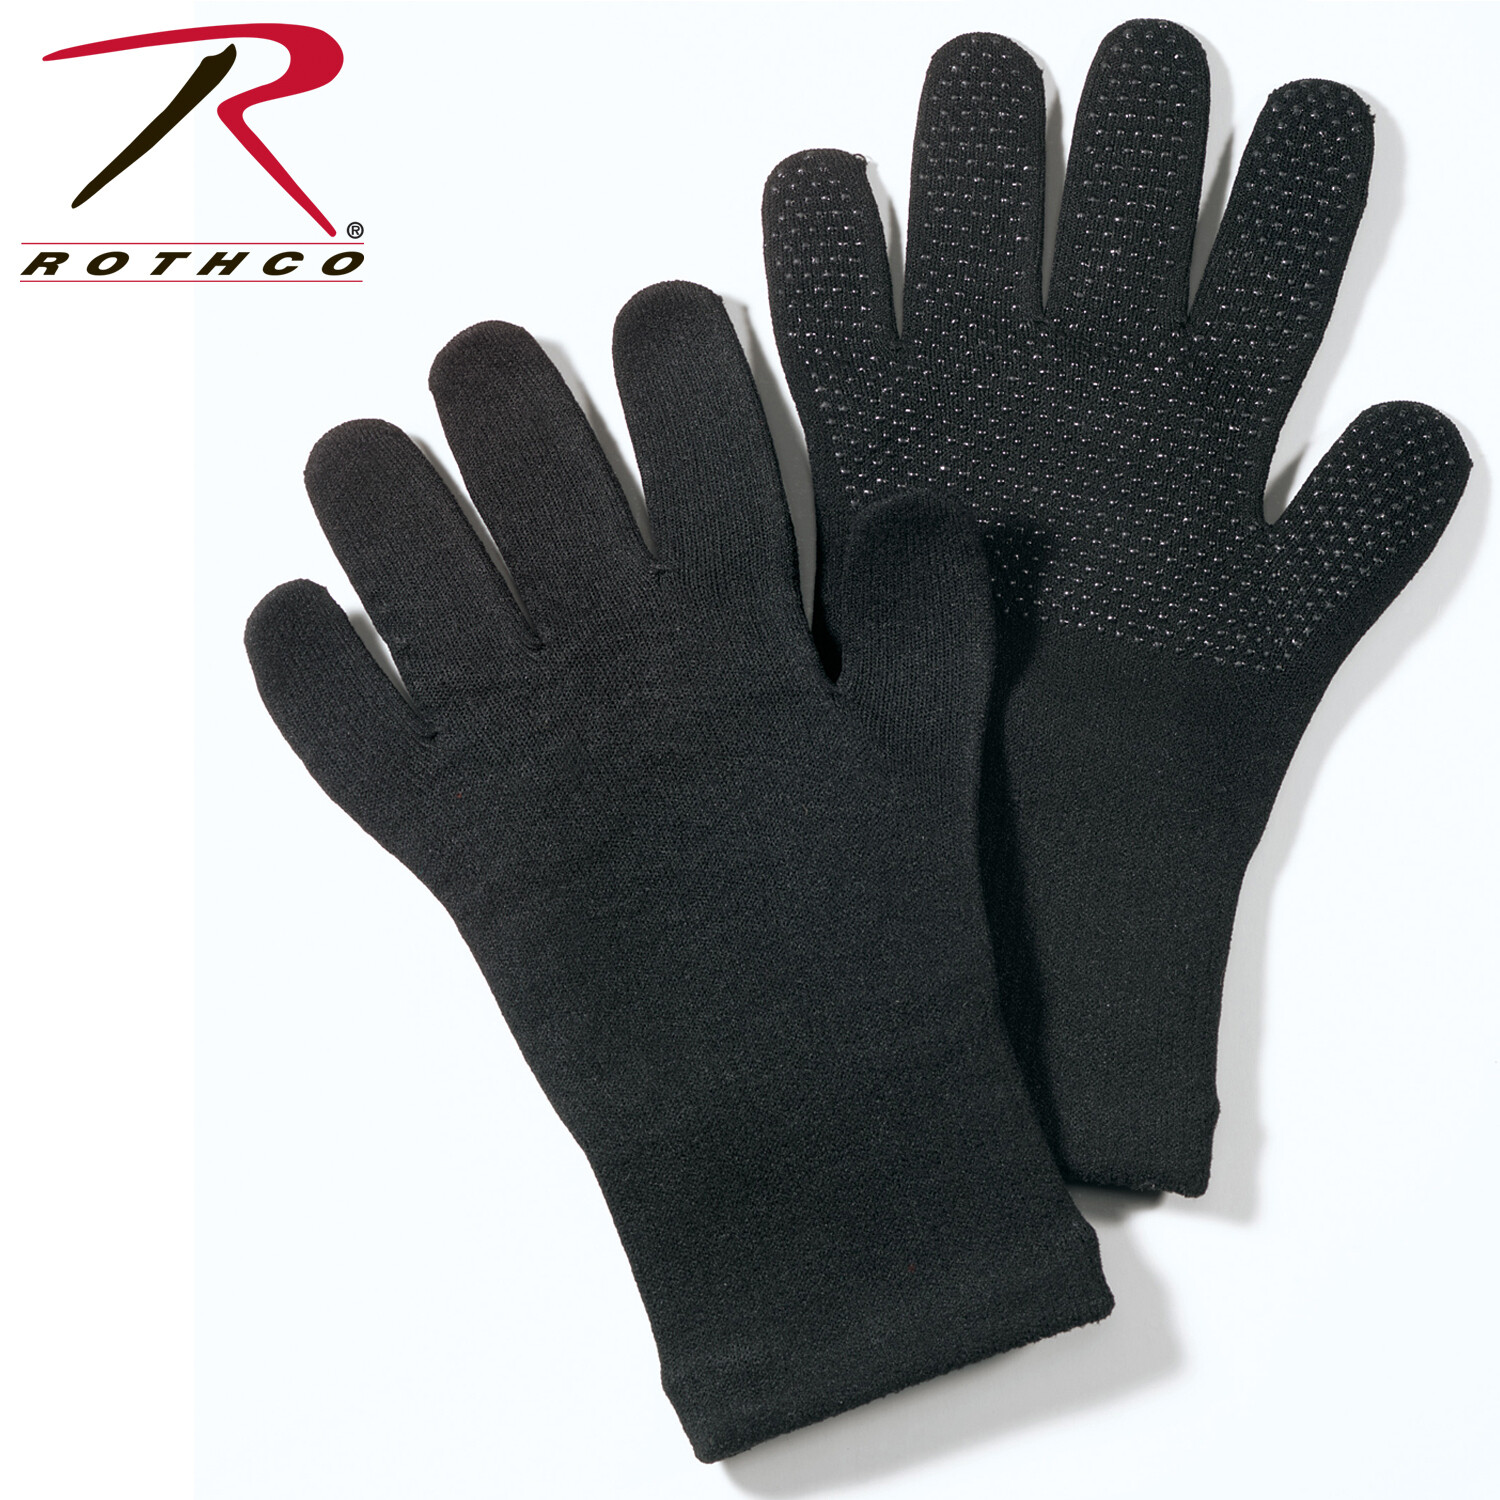 Rothco, 2191, Hanz Waterproof & Breathable Gloves